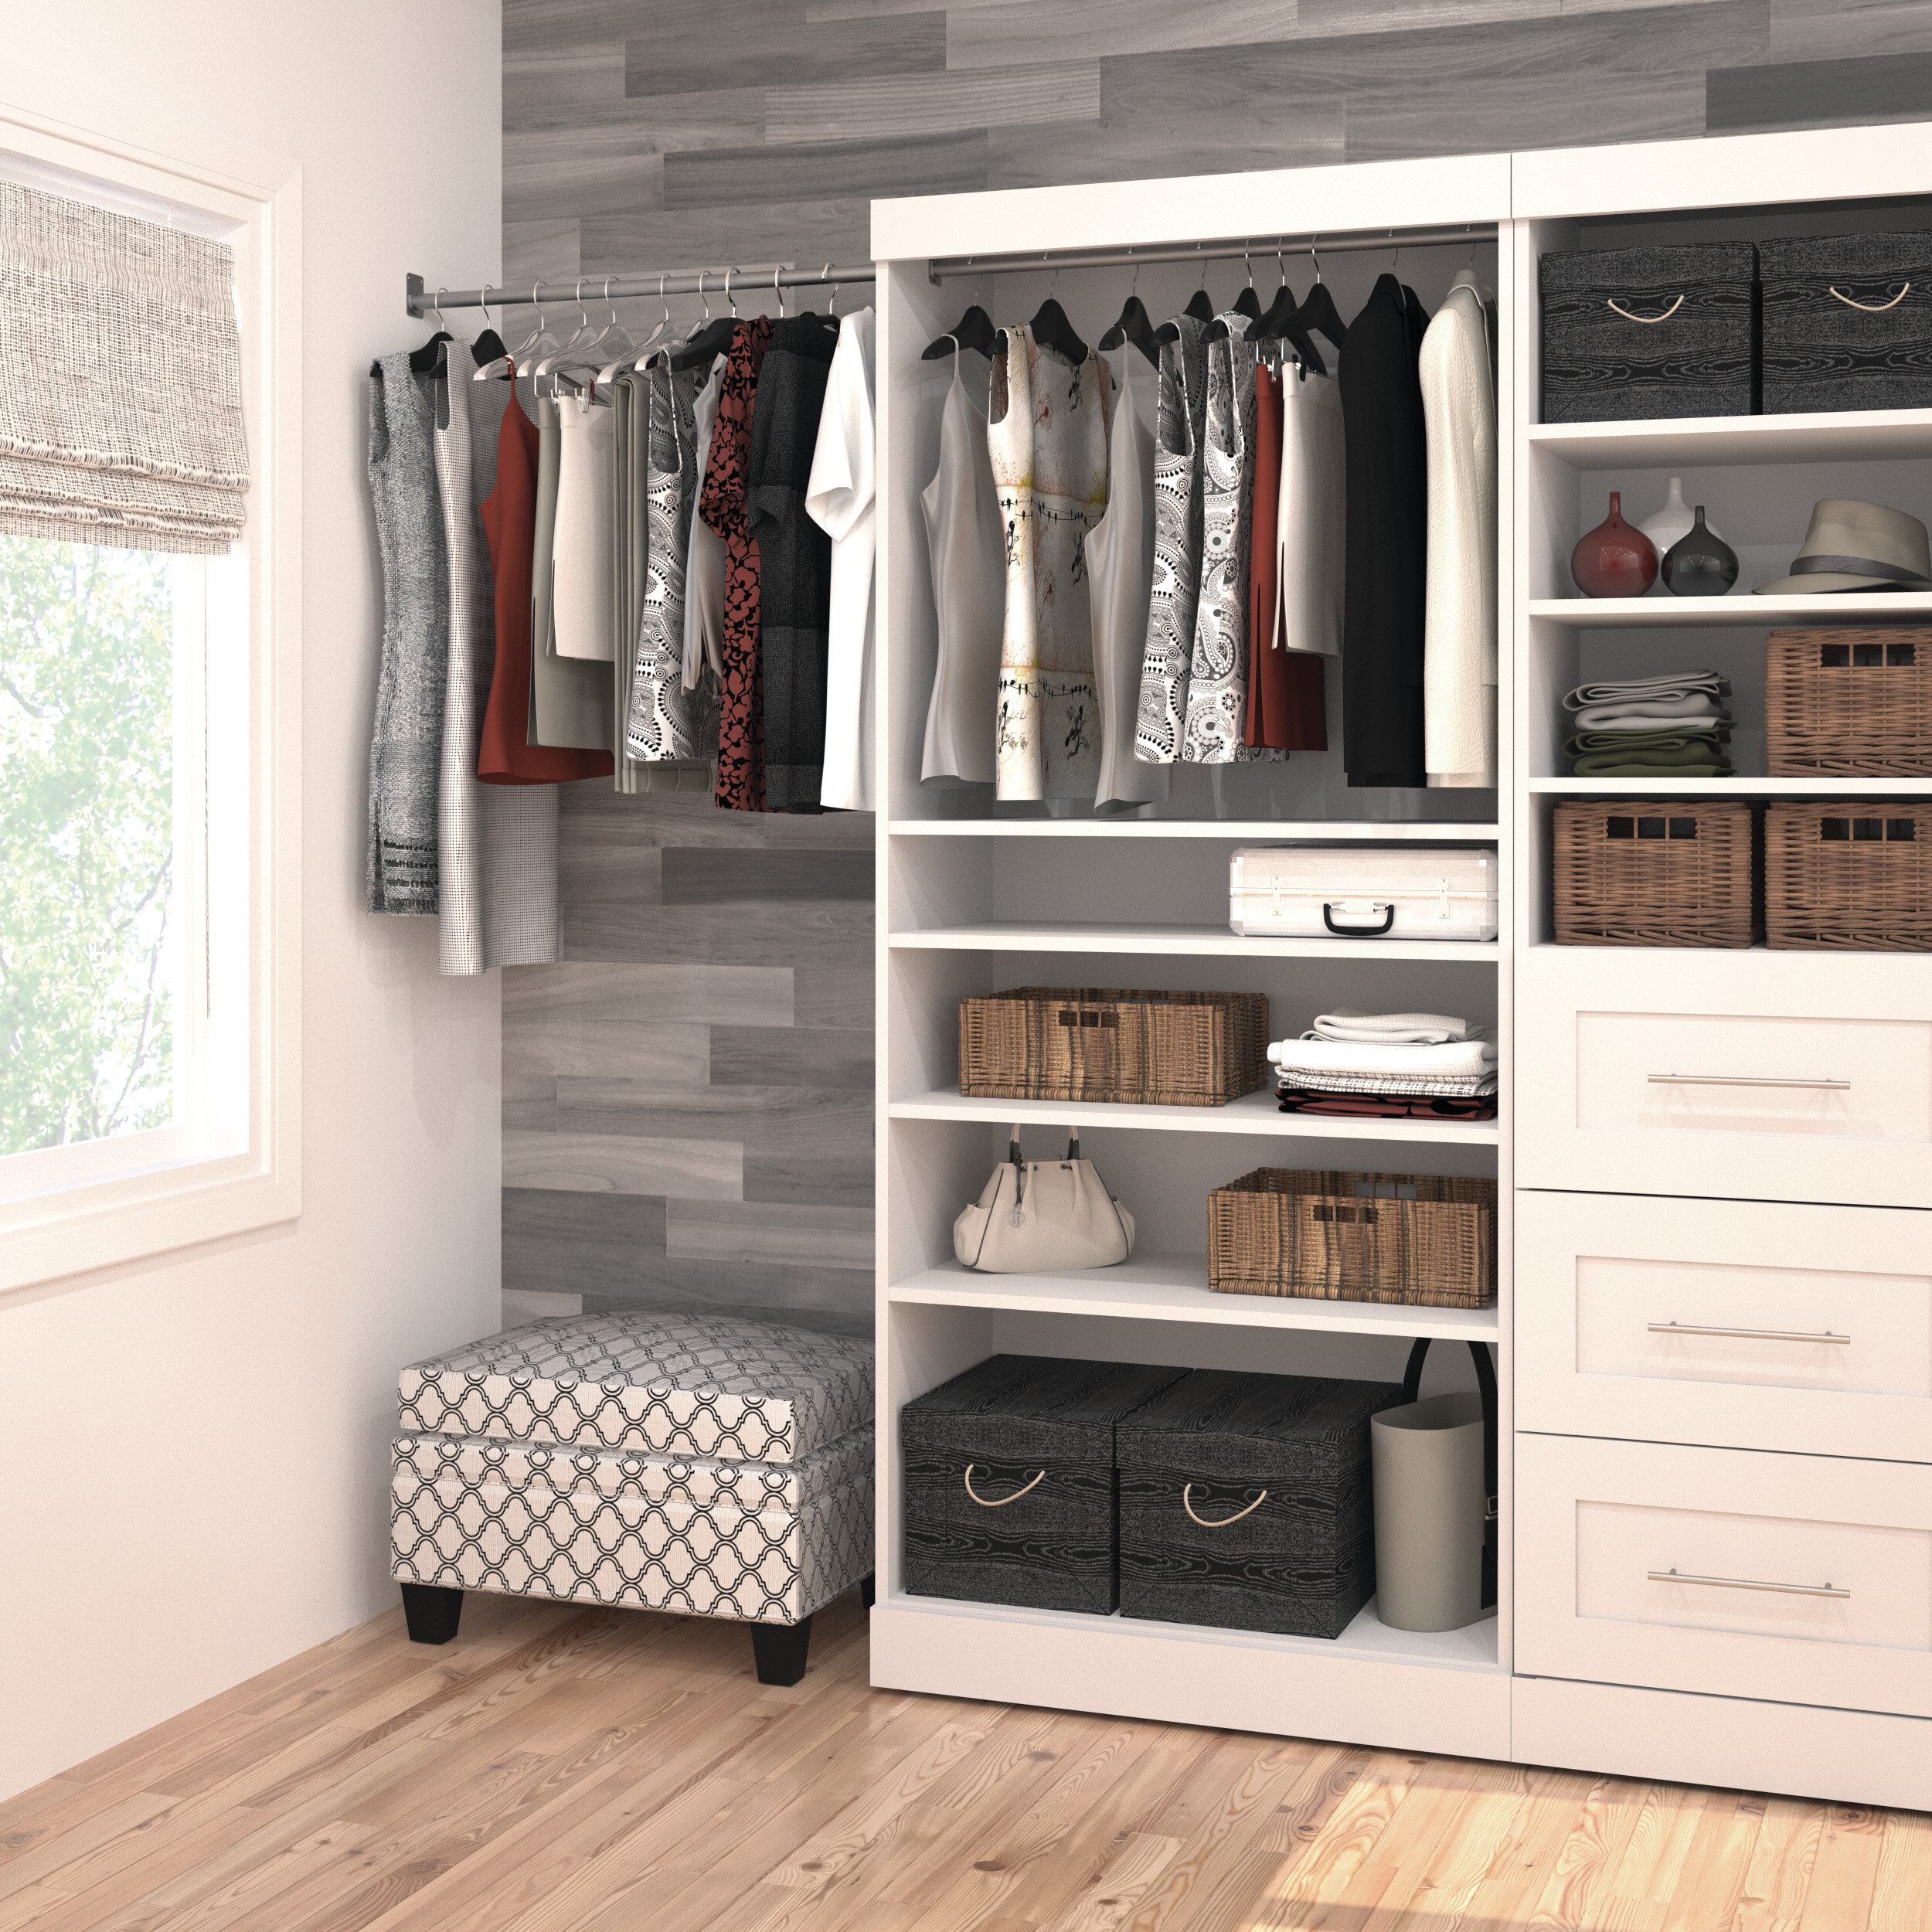 wall walk extra for buy the of storage where designing inserts near concepts to drawers stores have full ideas wardrobe modules organizer room space size systems how me your in closets shelving bedroom closet laundry mounted dreams